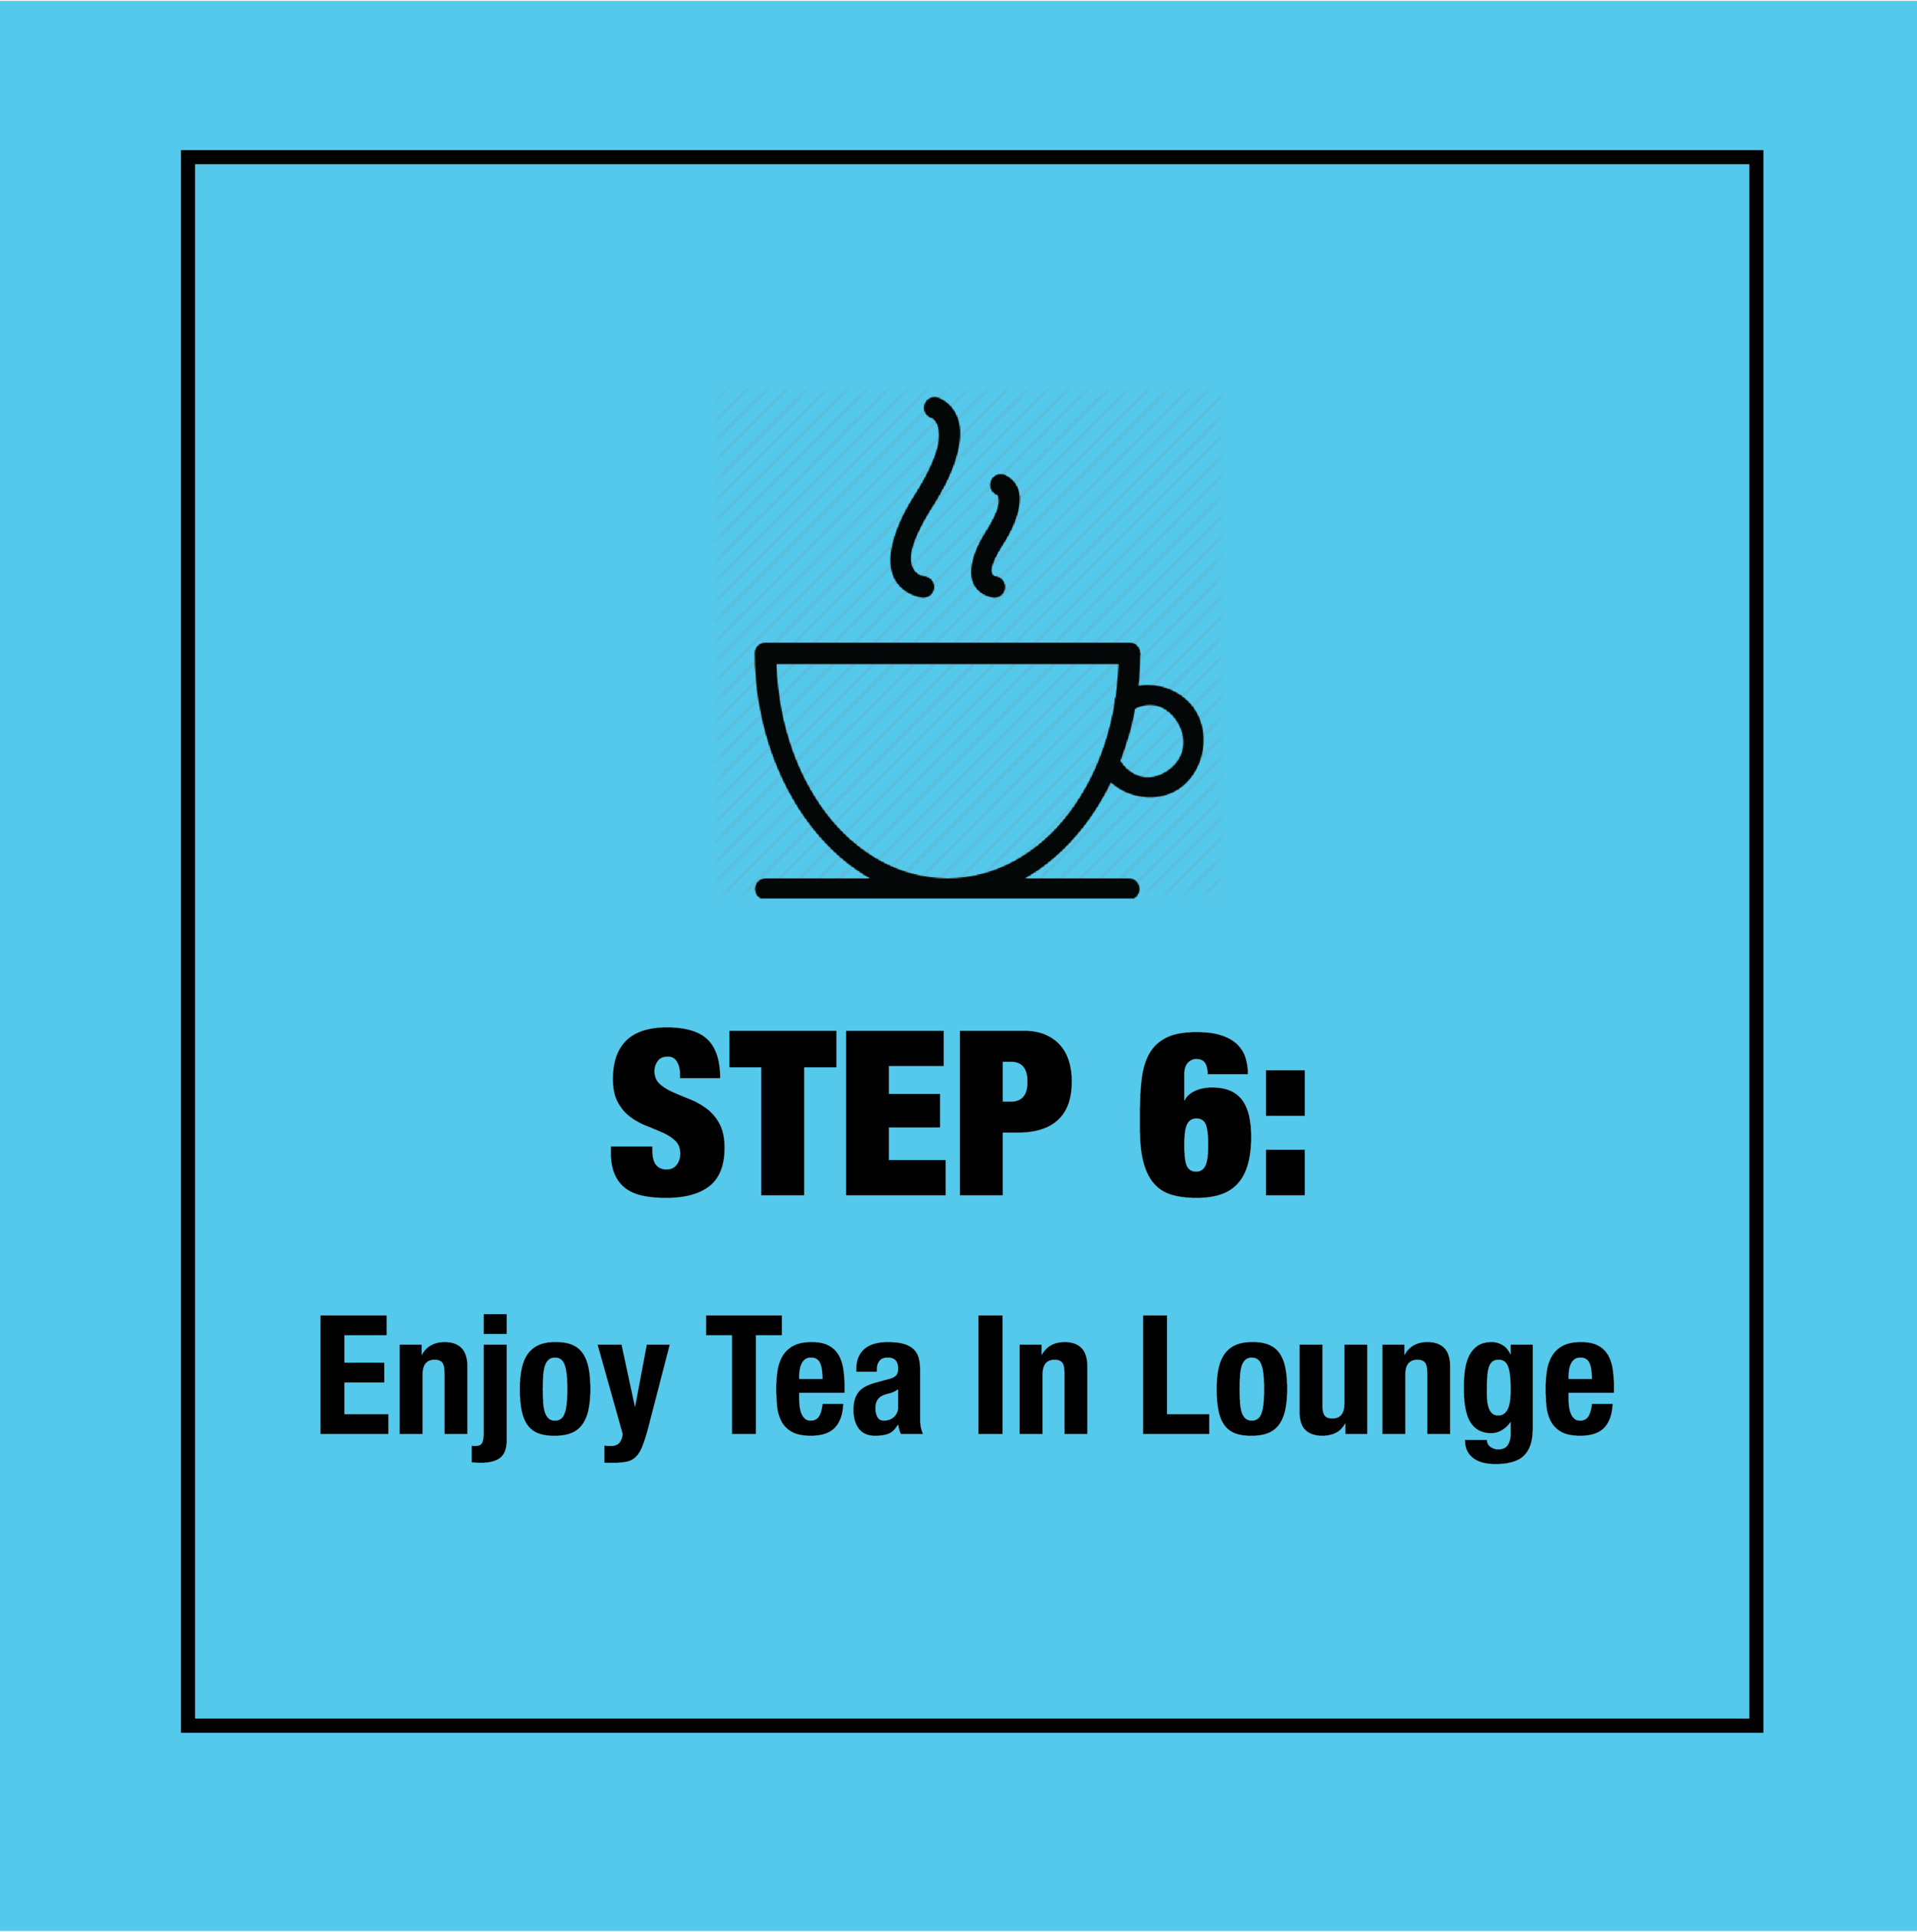 Exit the chamber, put on your robe and warm up with some hot tea or a snack from the Cafe.